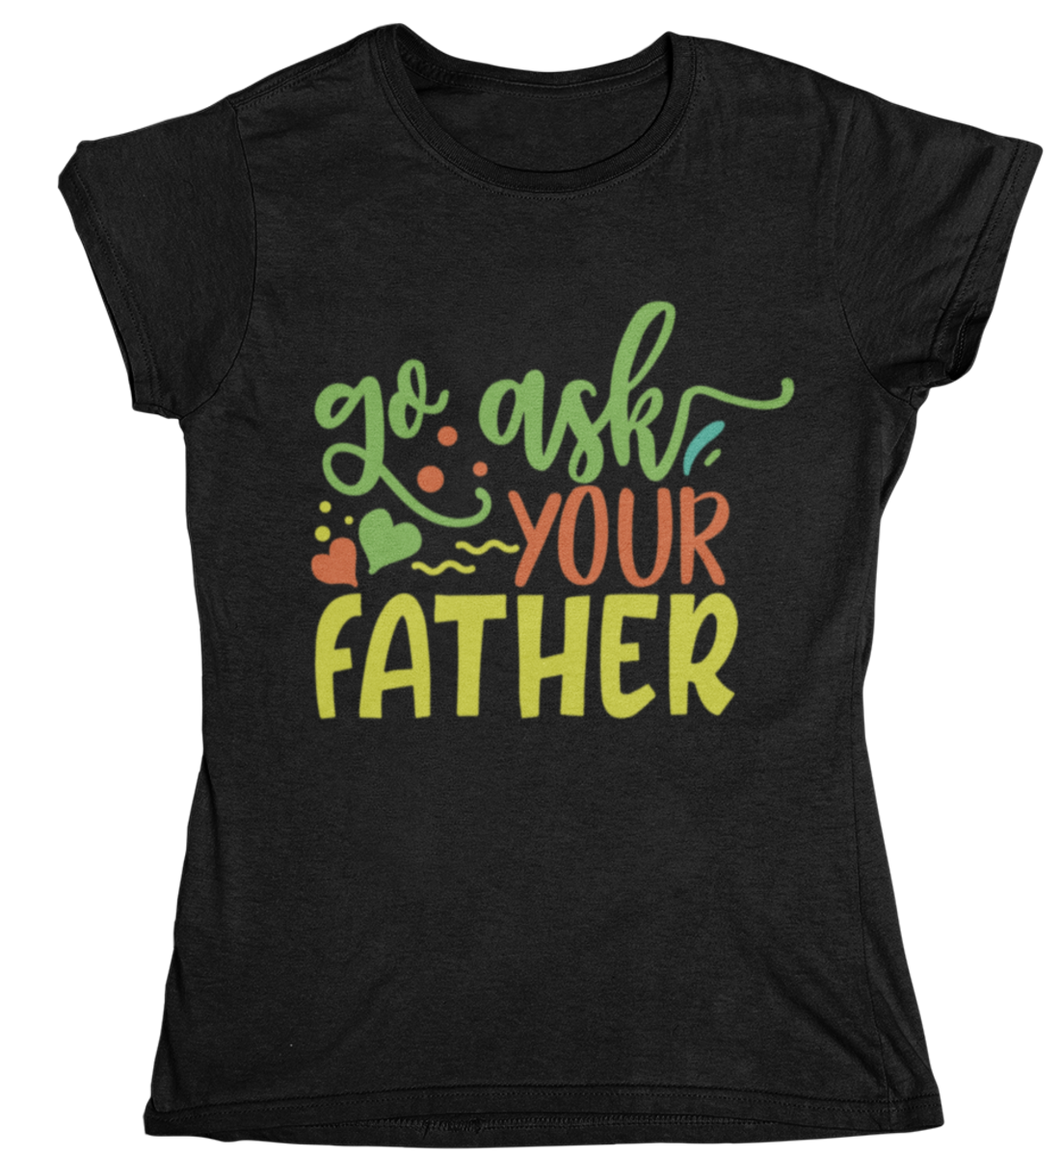 go ask your father - T-Shirt Frauen